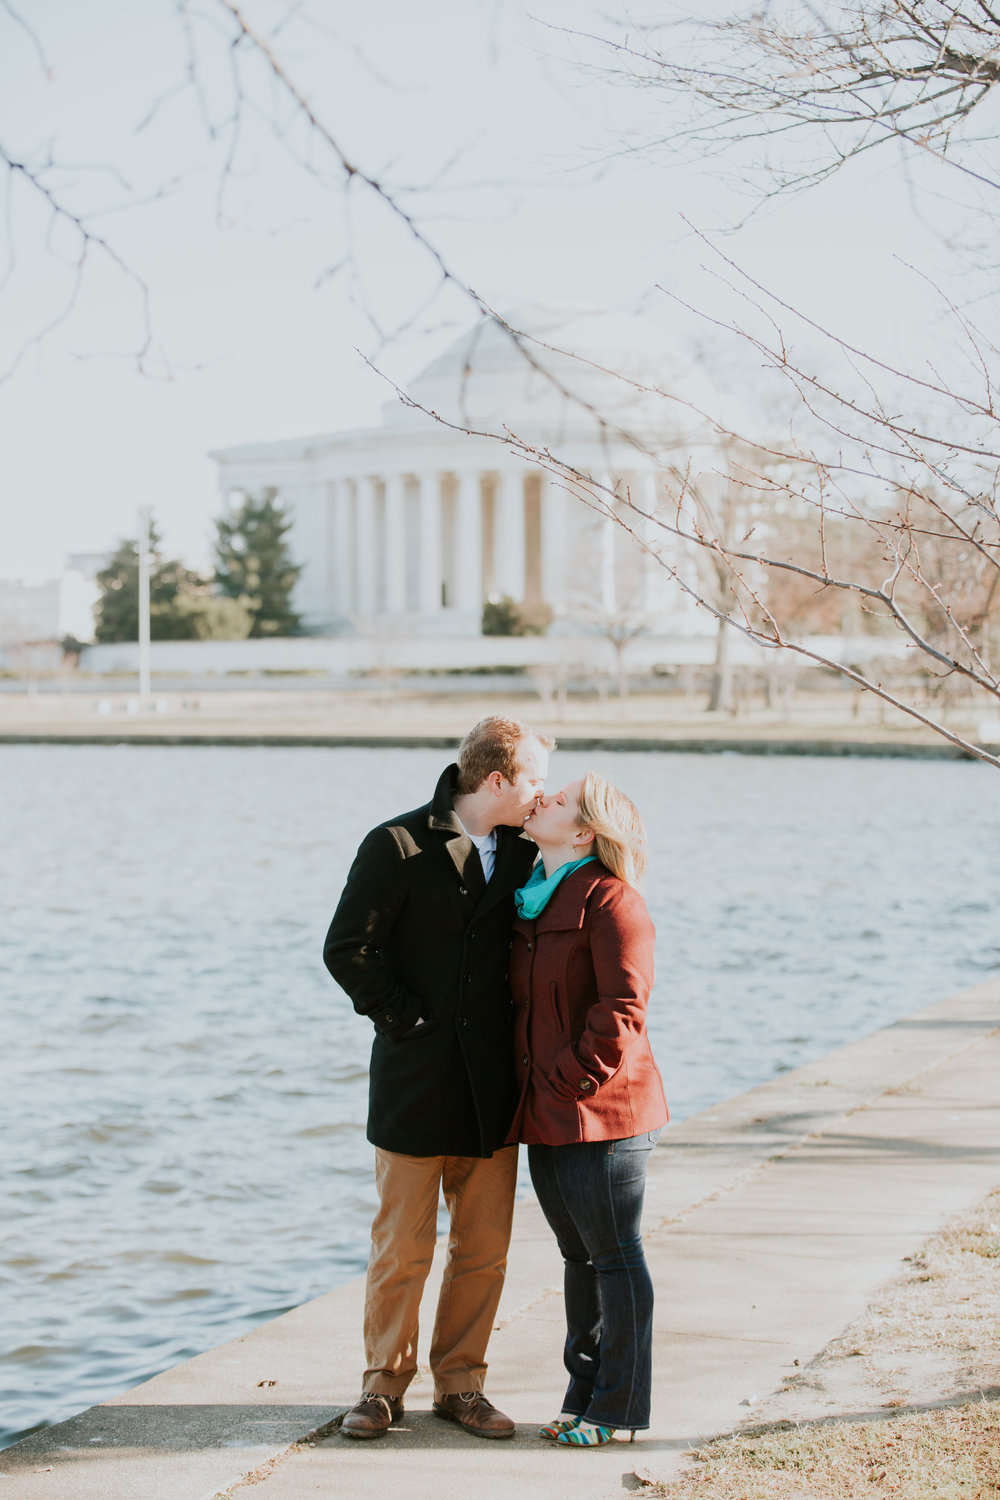 Jessica&Mike_Engaged-237.JPG